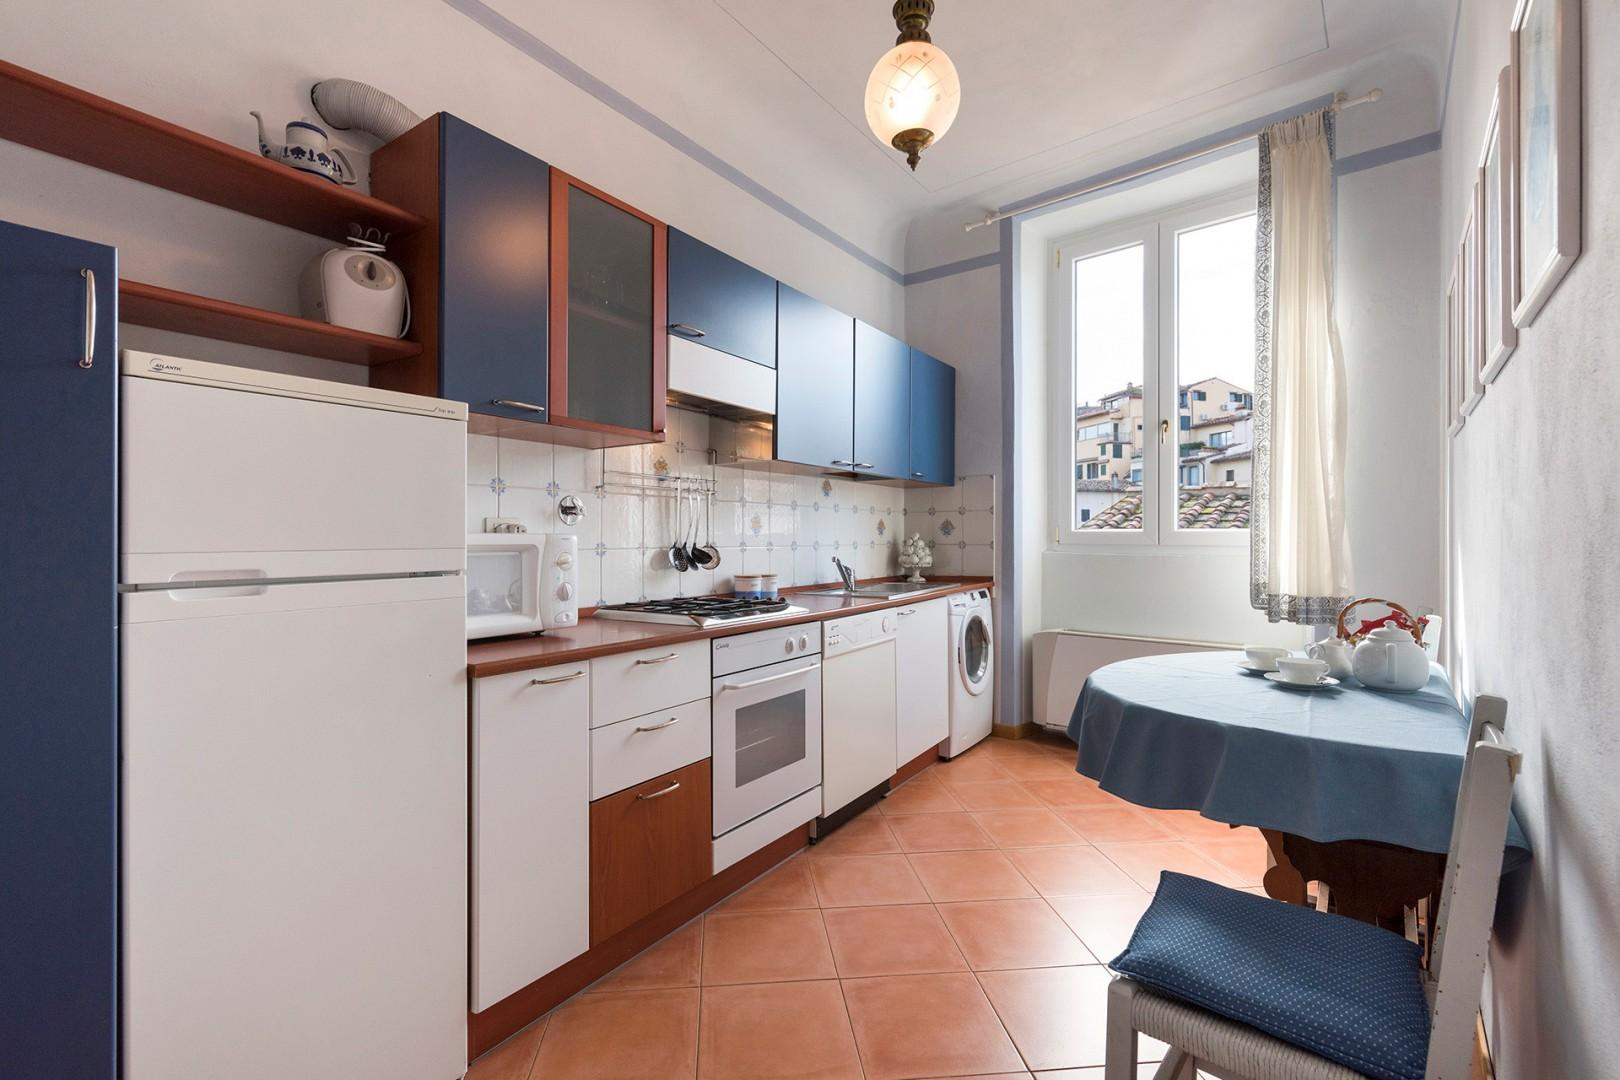 Bright and well equipped kitchen with table for two.